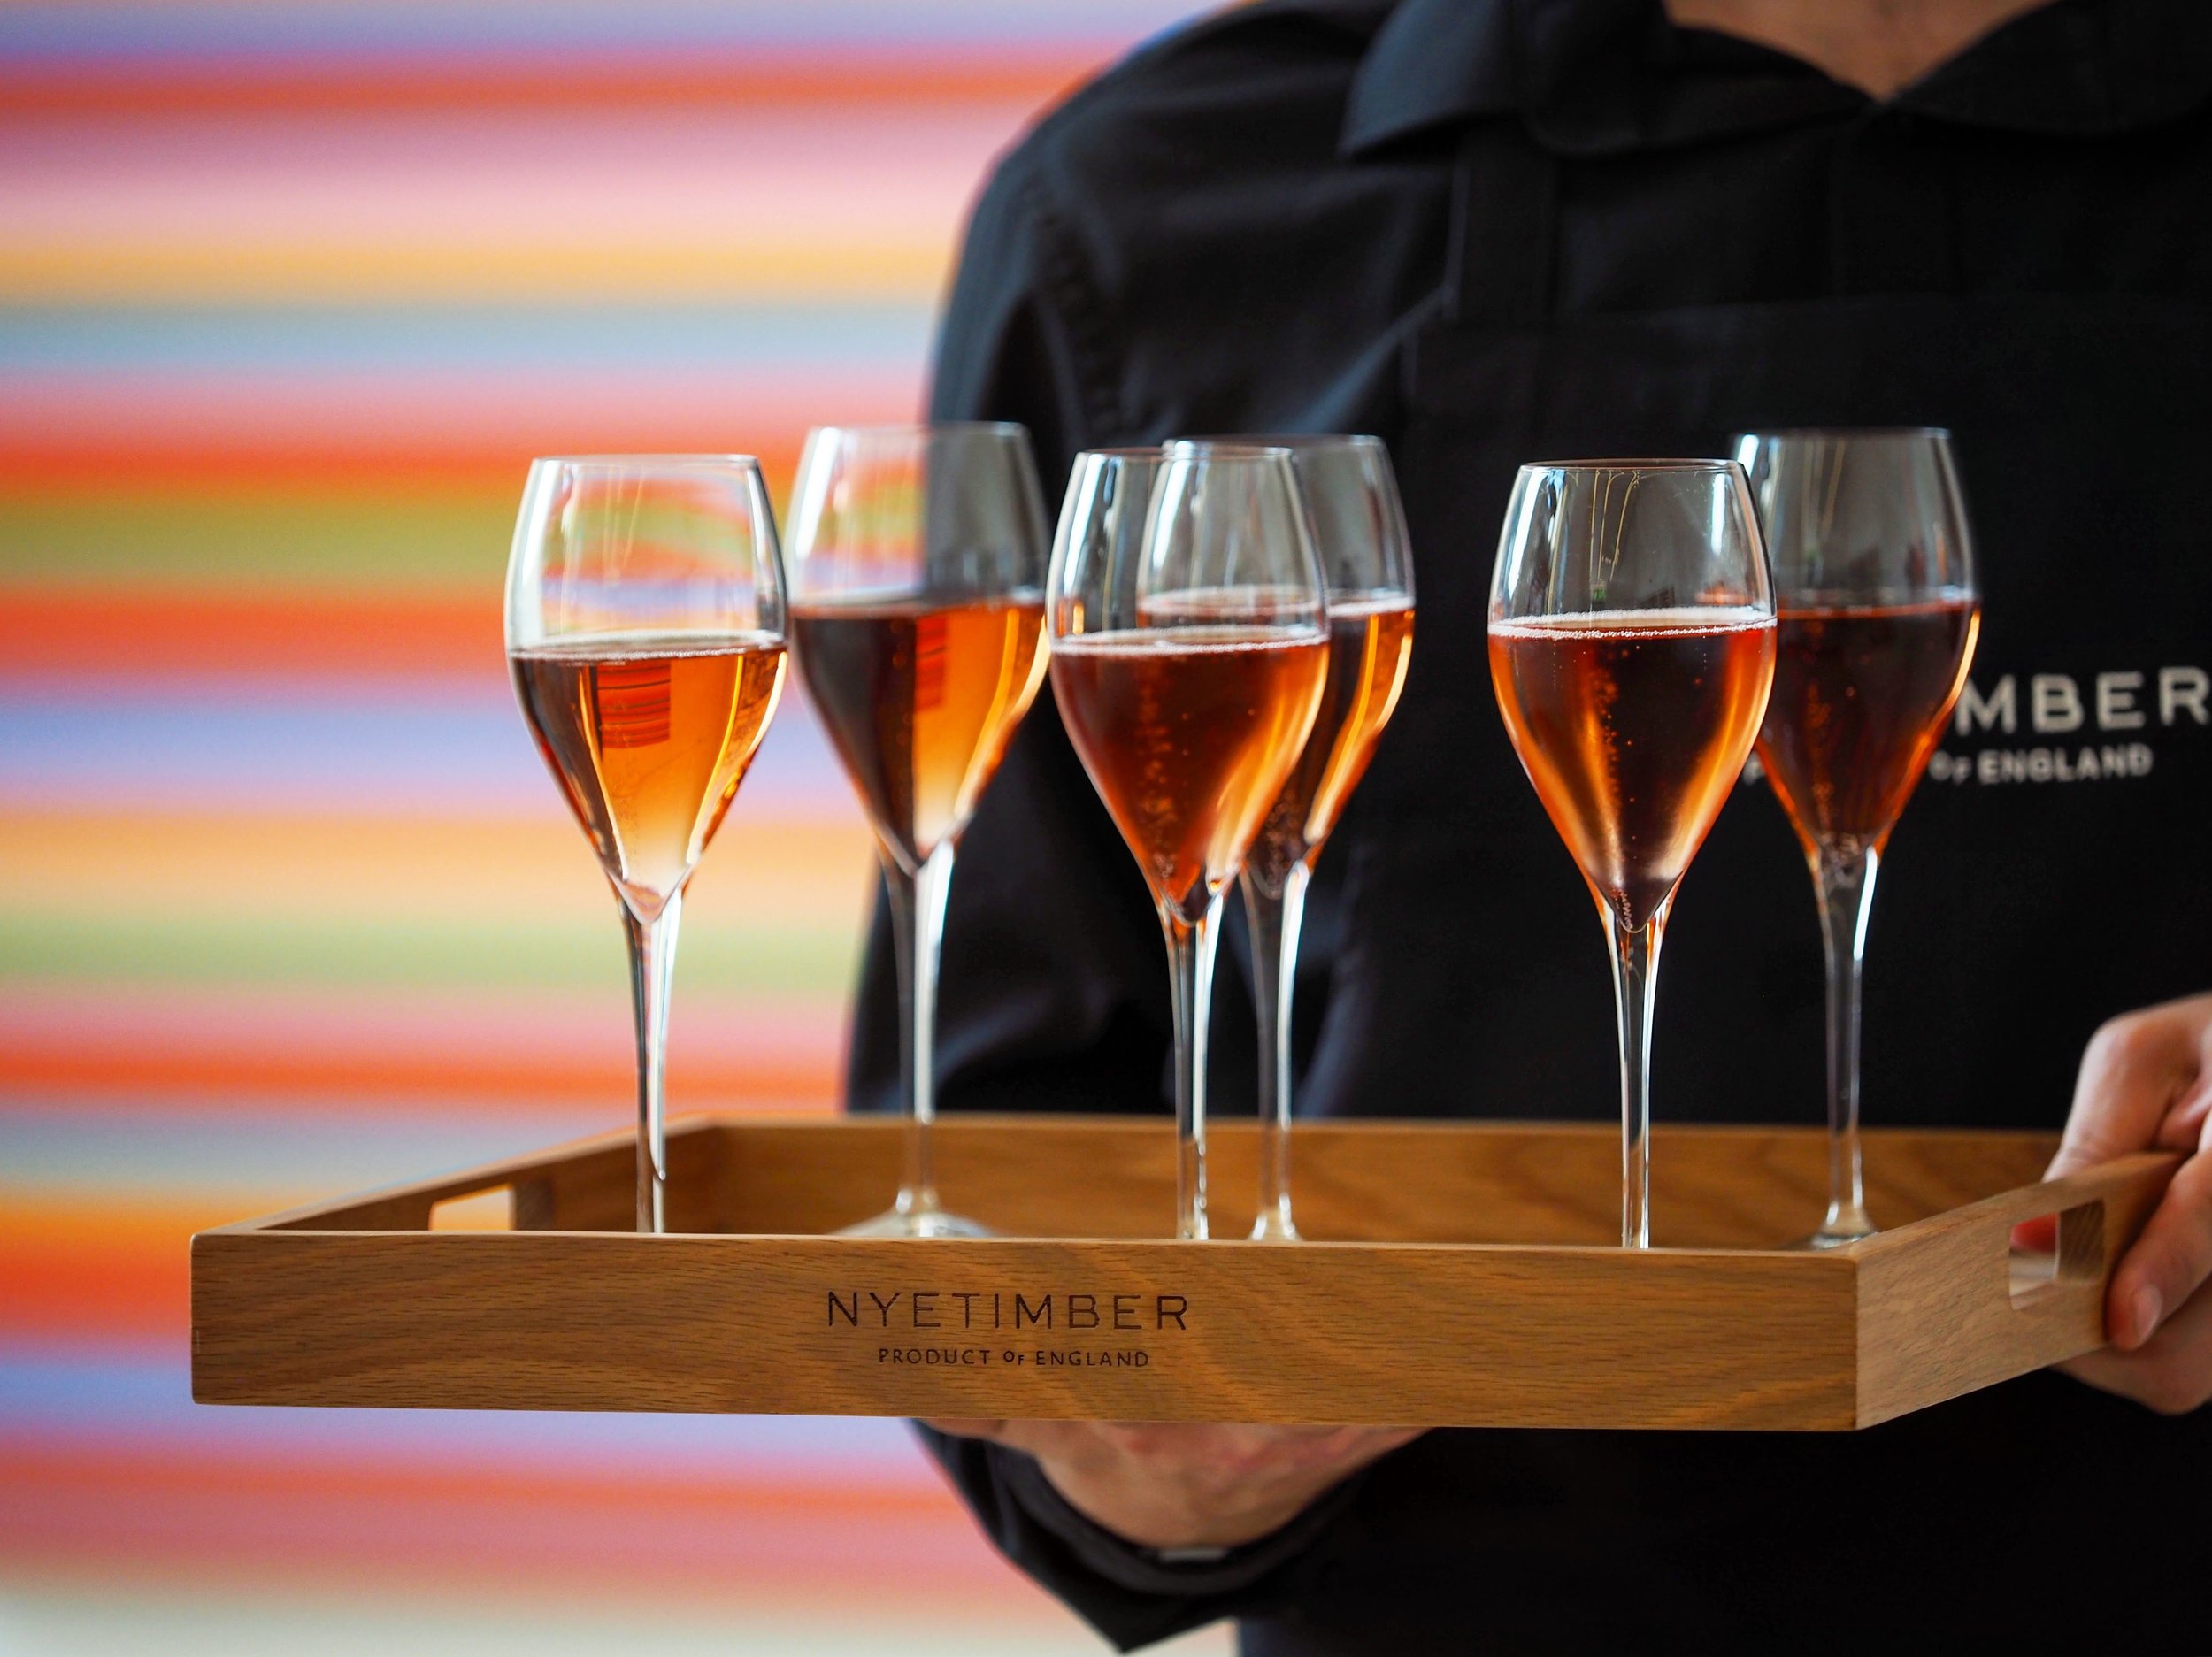 Sparkling Rosé from Nyetimber